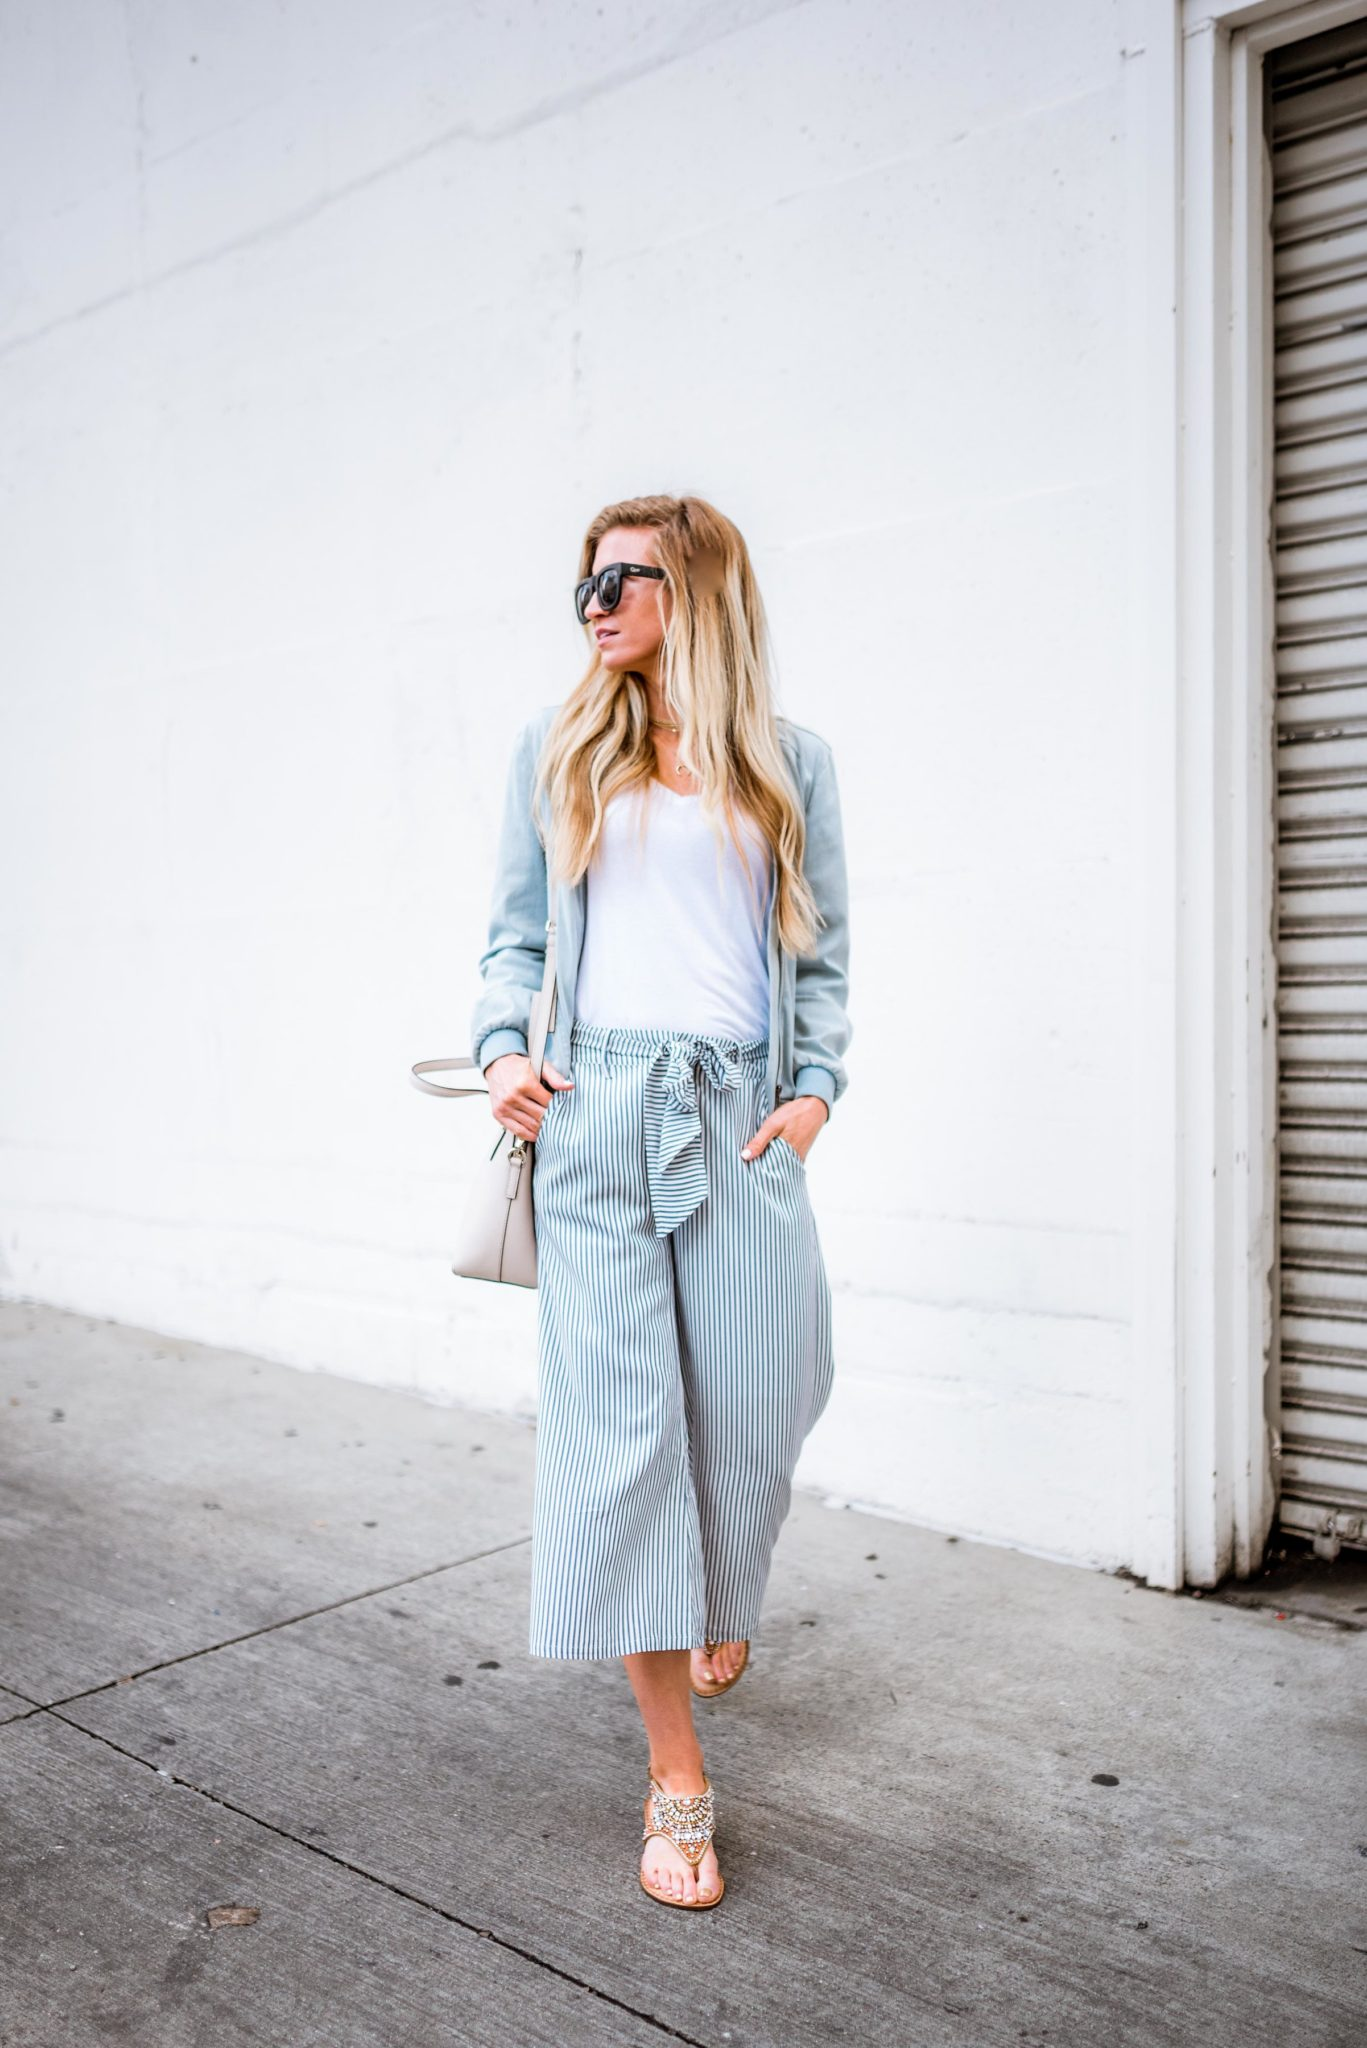 SPRING PANTS I'M LOVING + SHOP MY INSTAGRAM VIA EMAIL OPTION